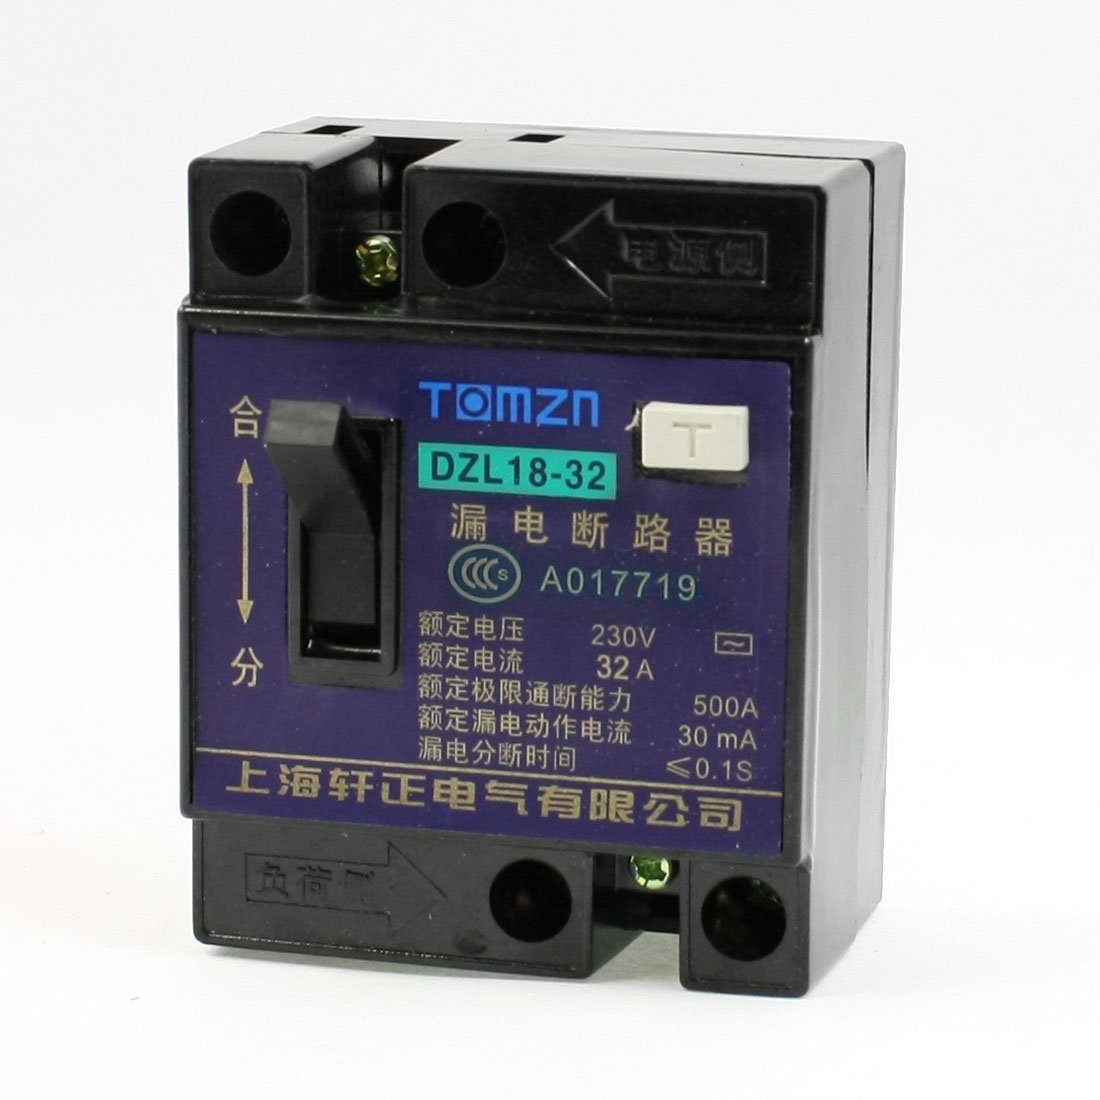 Uxcell DZL18-32 AC 230V 32 Amp 1 Pole 1P On//Off Switch ELCB Earth Leakage Circuit Breaker Uxcell UXCE9 a13051300ux0222